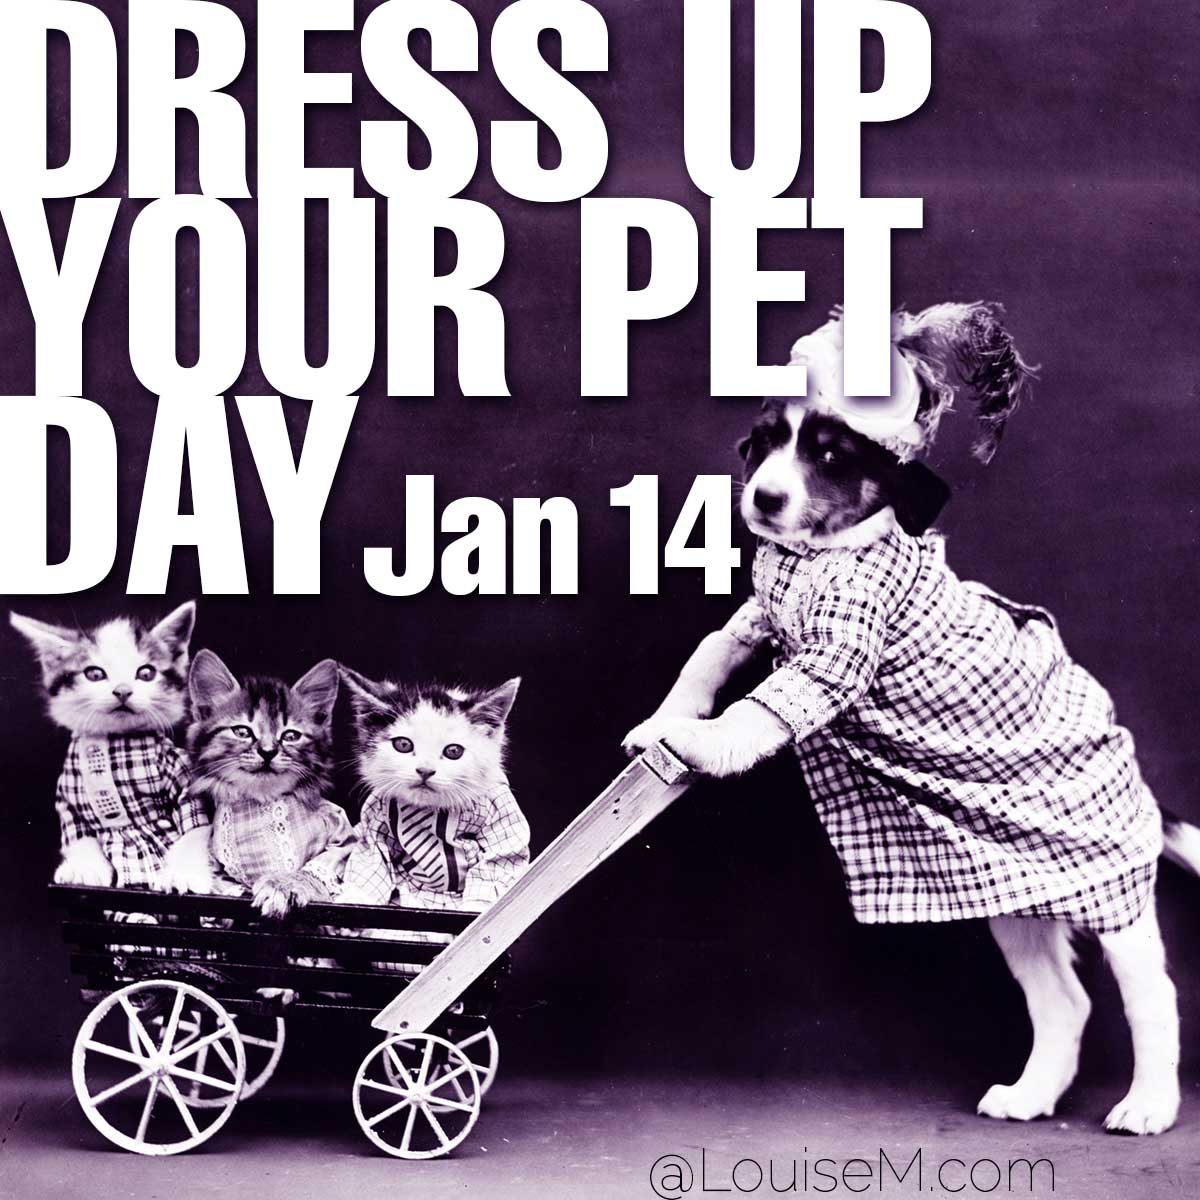 Dress Up Your Pet Day text on photo of pets in costume.